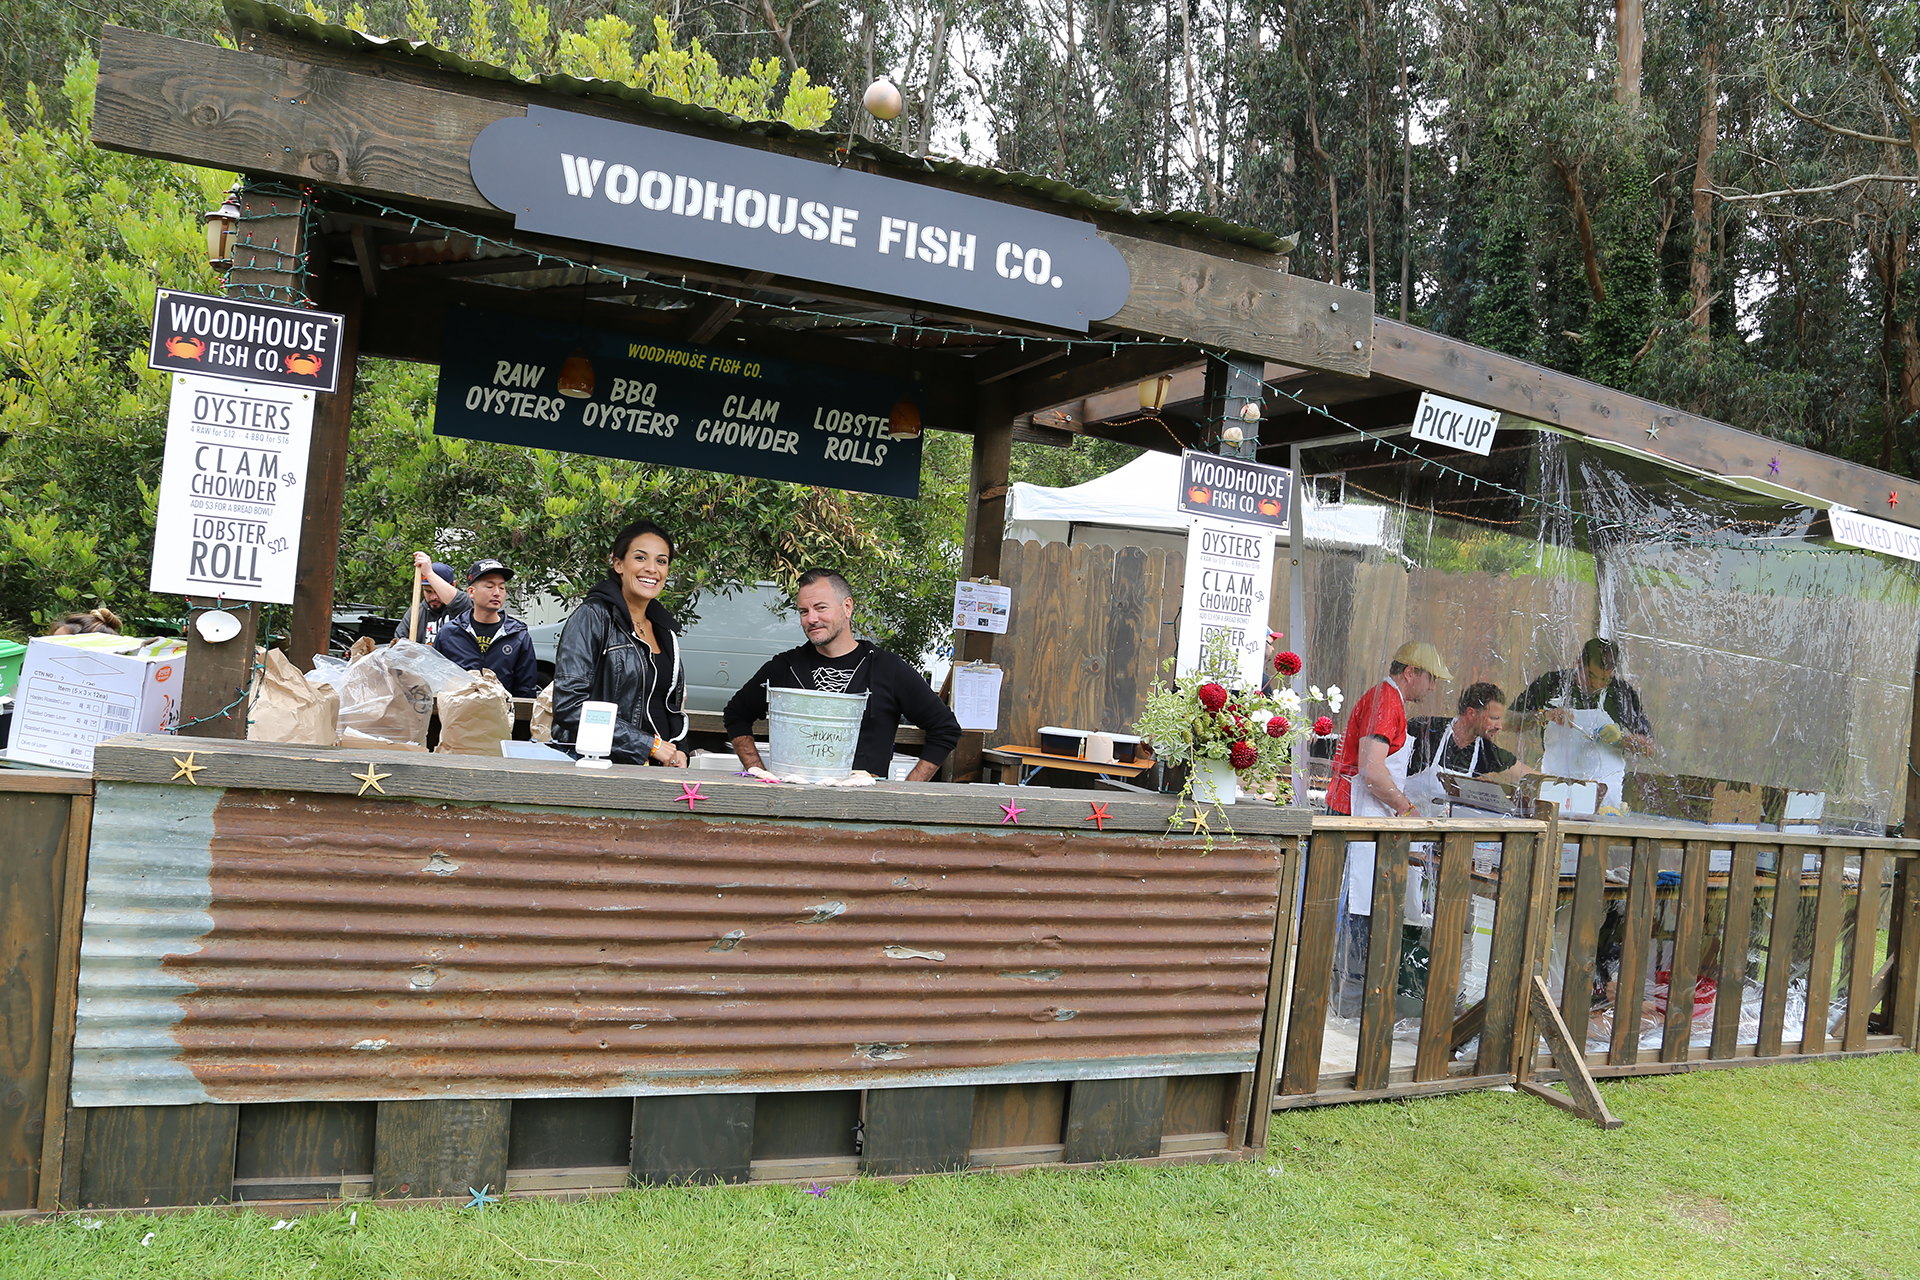 Outside Clams - Woodhouse Fish Co.